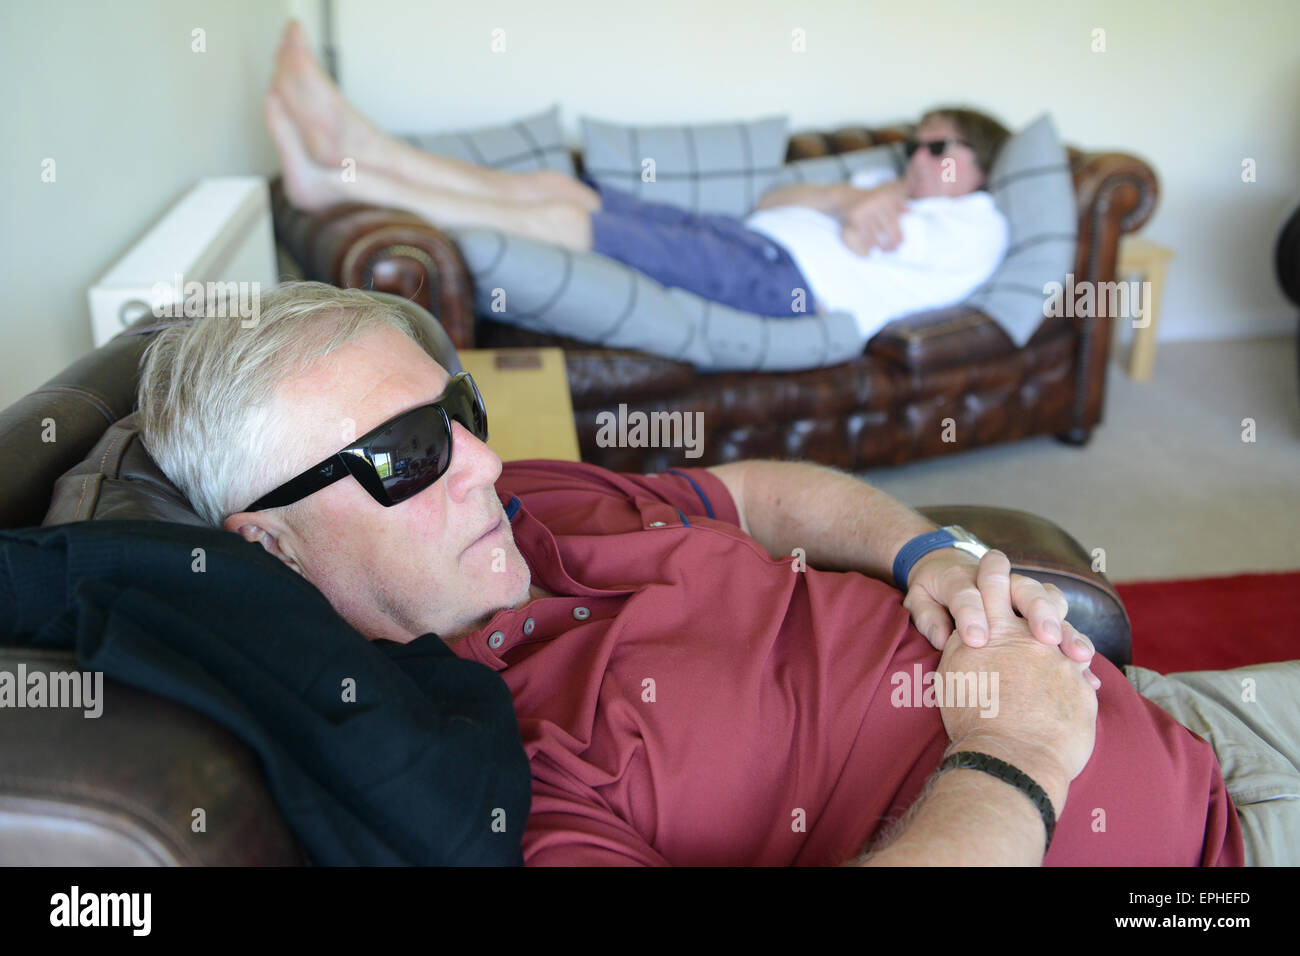 Men man afternoon nap sleep sleeping daytime relaxing relaxed - Stock Image